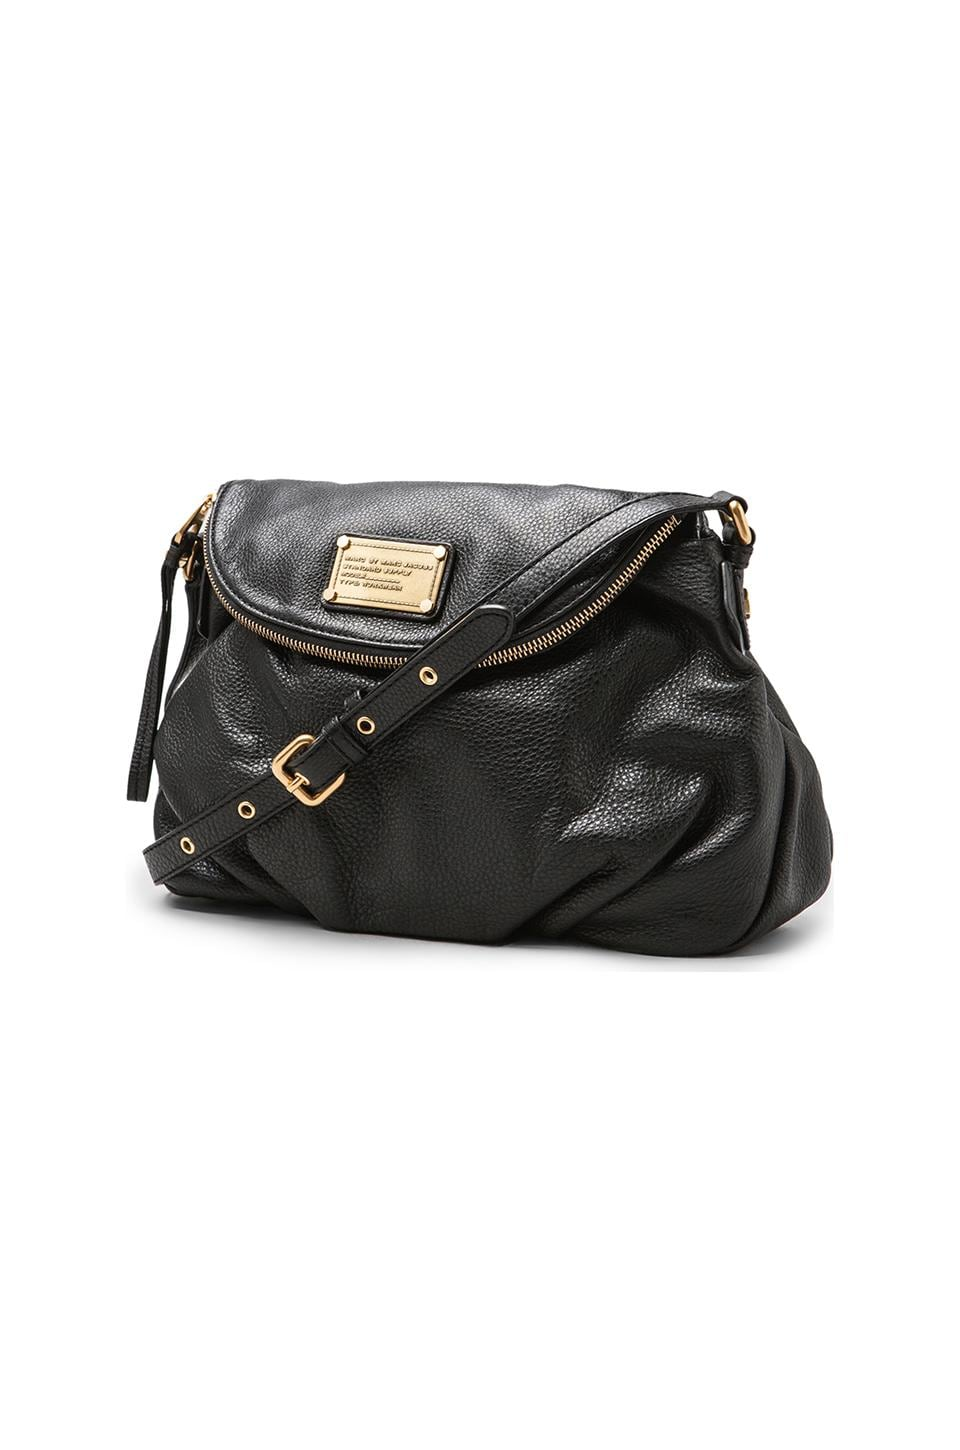 Marc by Marc Jacobs Classic Q Natasha in Black